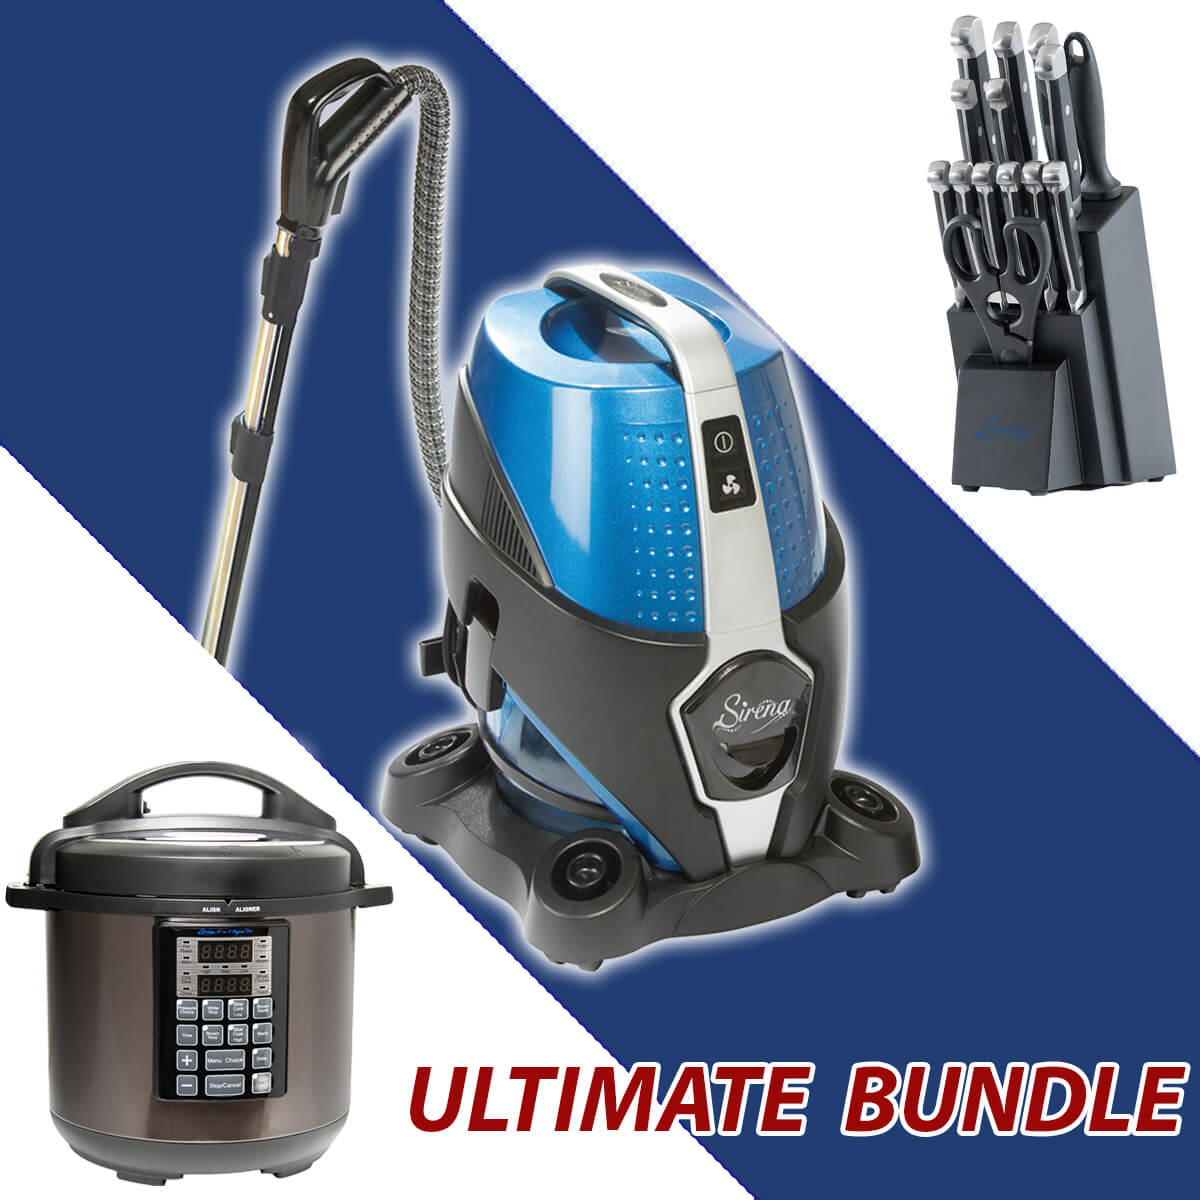 Sirena Ultimate Bundle - Sirena Vacuum Cleaner + Sirena Elite Set + Sirena Rapid Pot